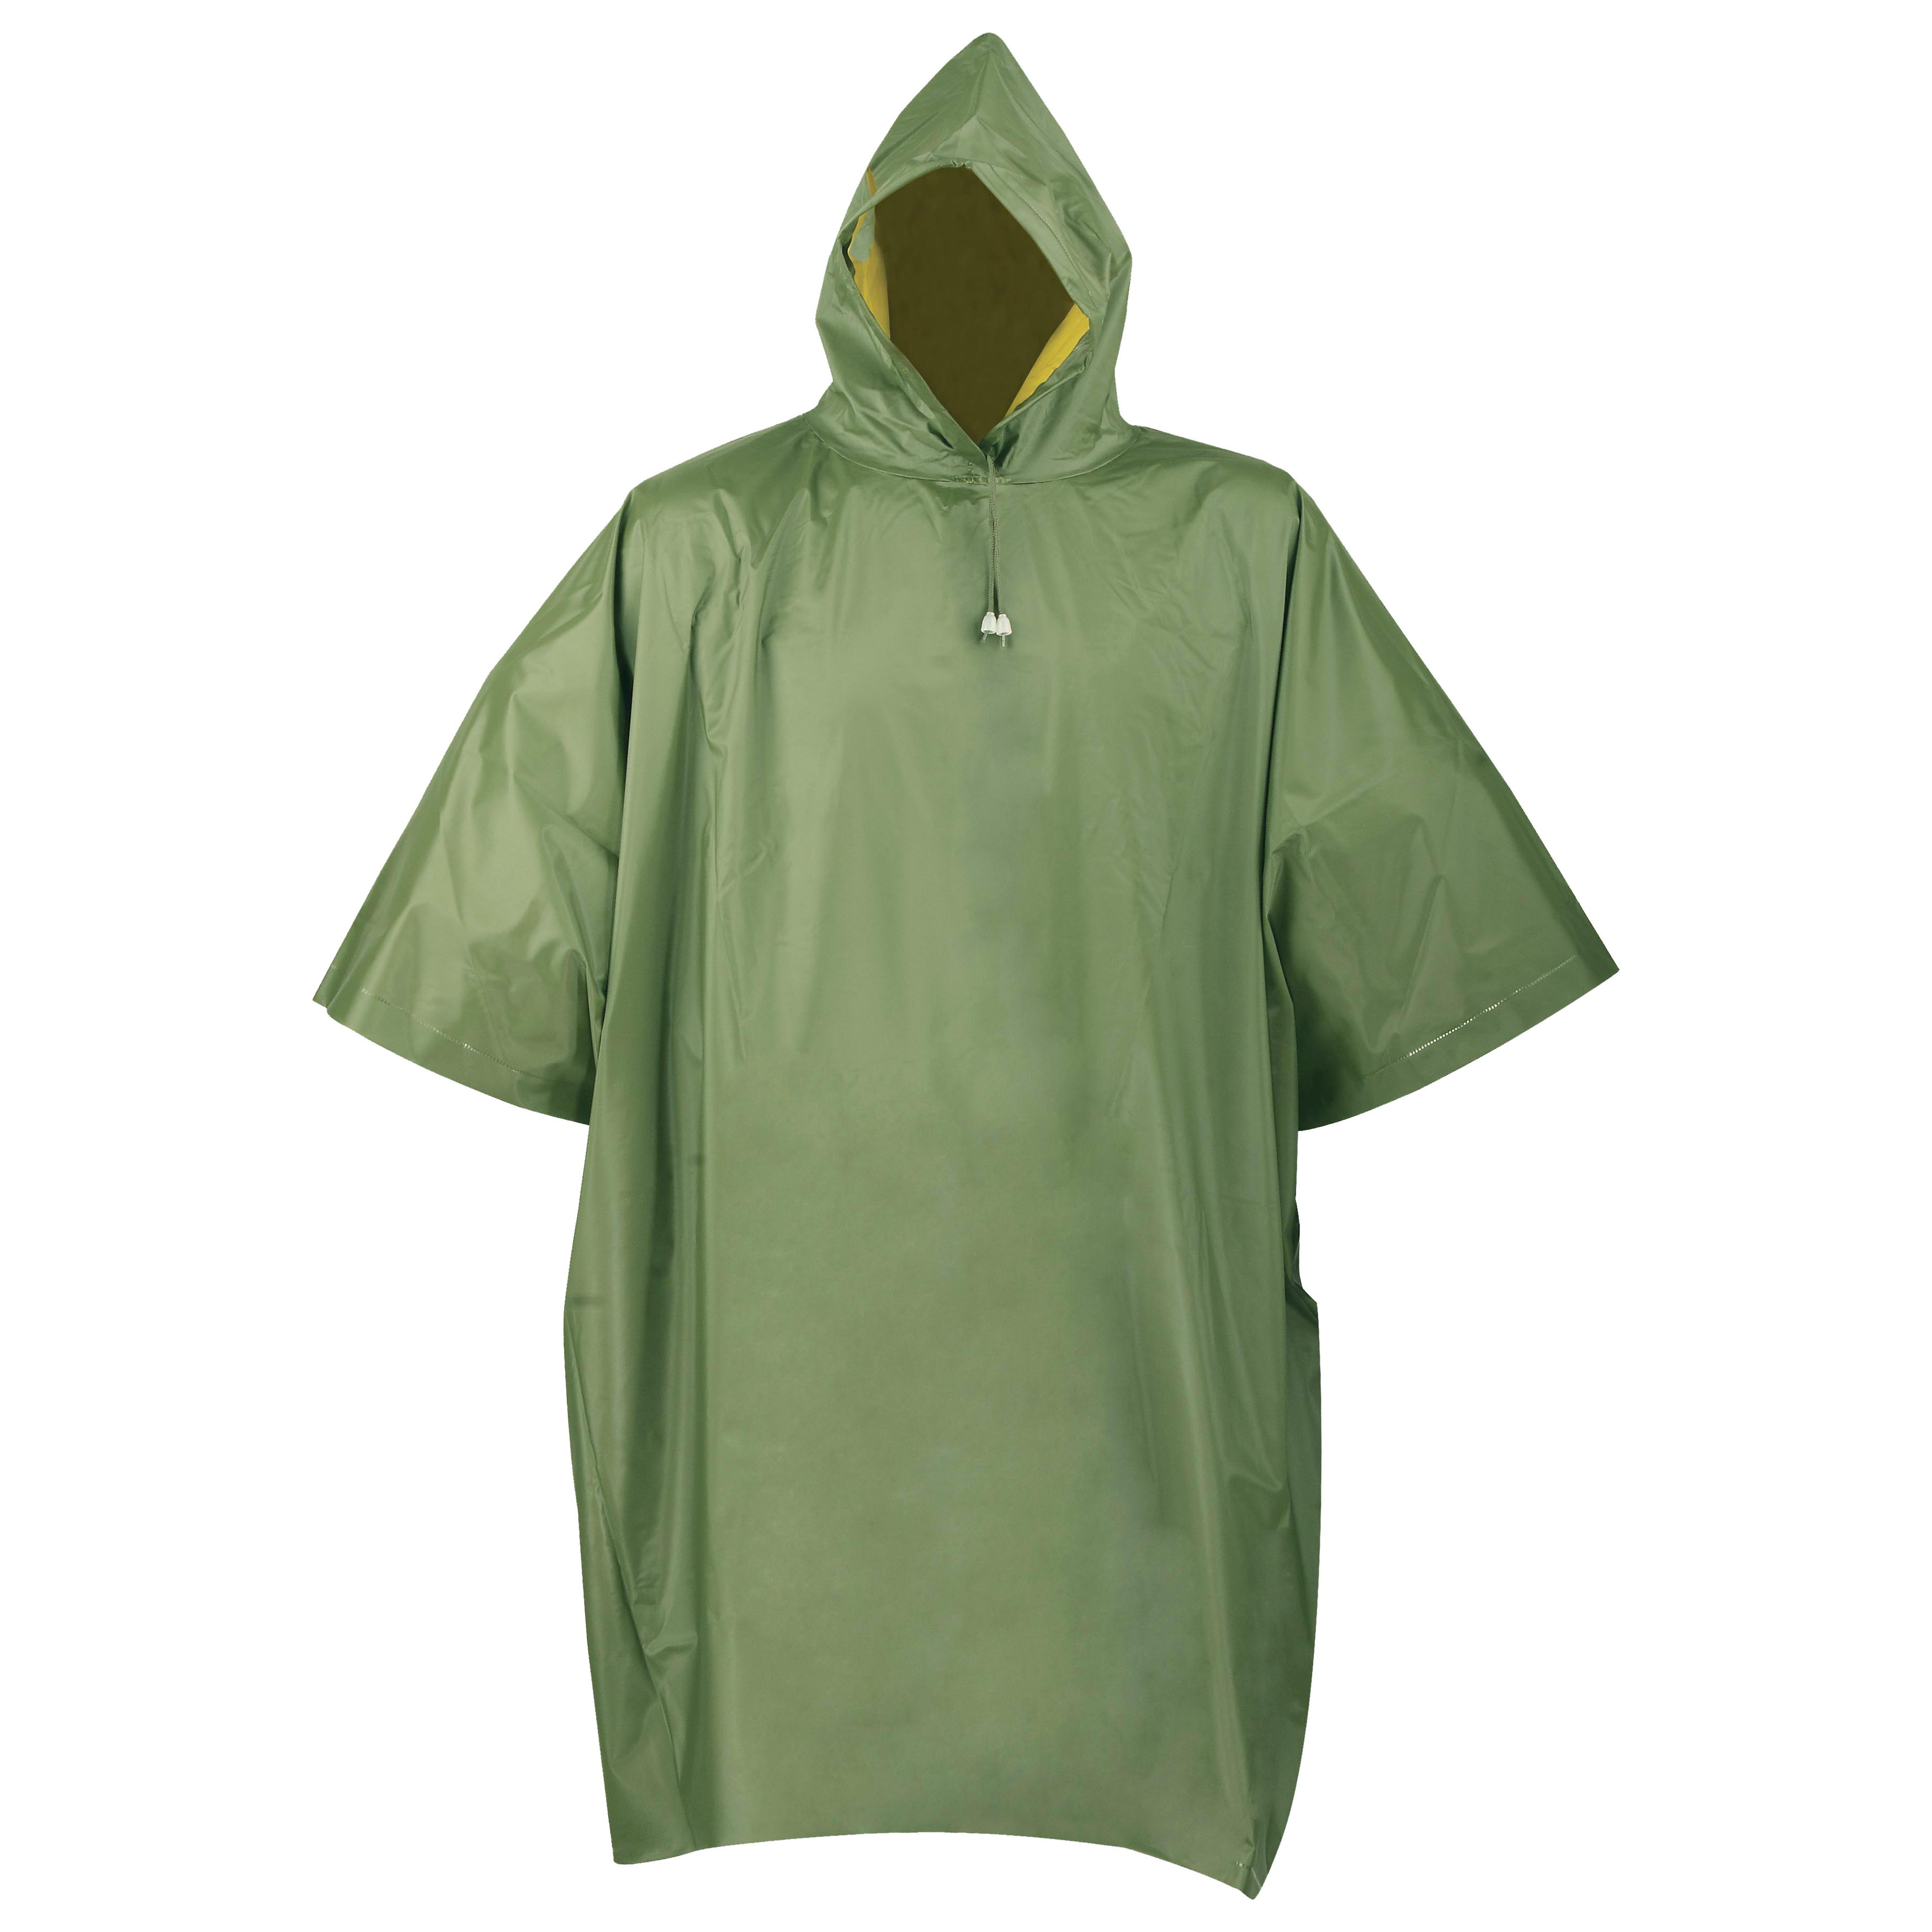 Picture of Diamondback 2690 Reversible Poncho, L, PVC, Olive/Yellow, Side Snap Closure